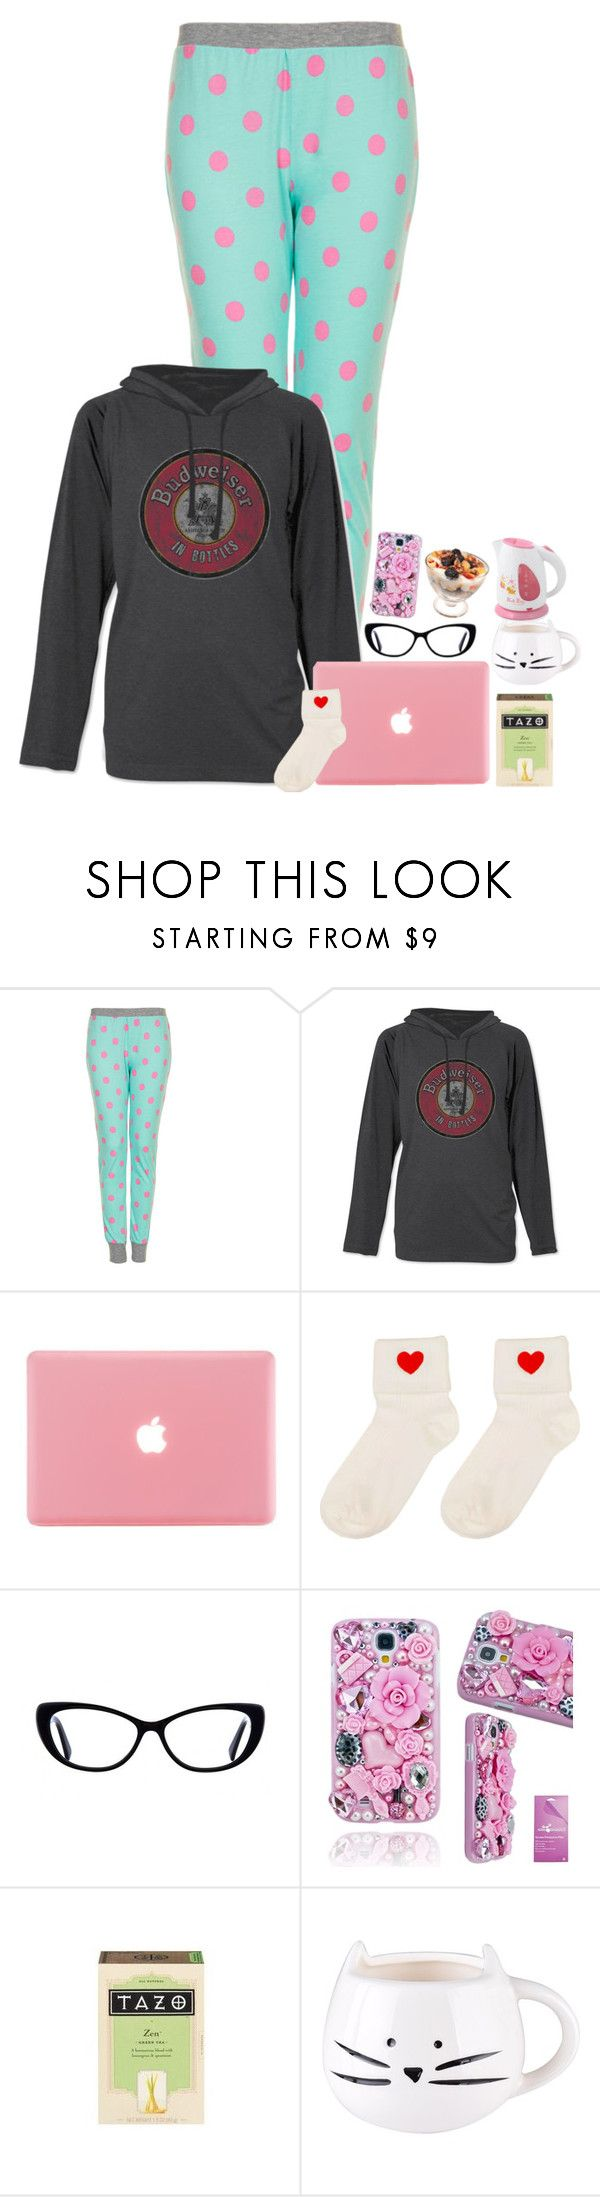 """Untitled #959"" by emmzizleez888 ❤ liked on Polyvore featuring Topshop, American Eagle Outfitters, JEM, Samsung, Hello Kitty and vintage"